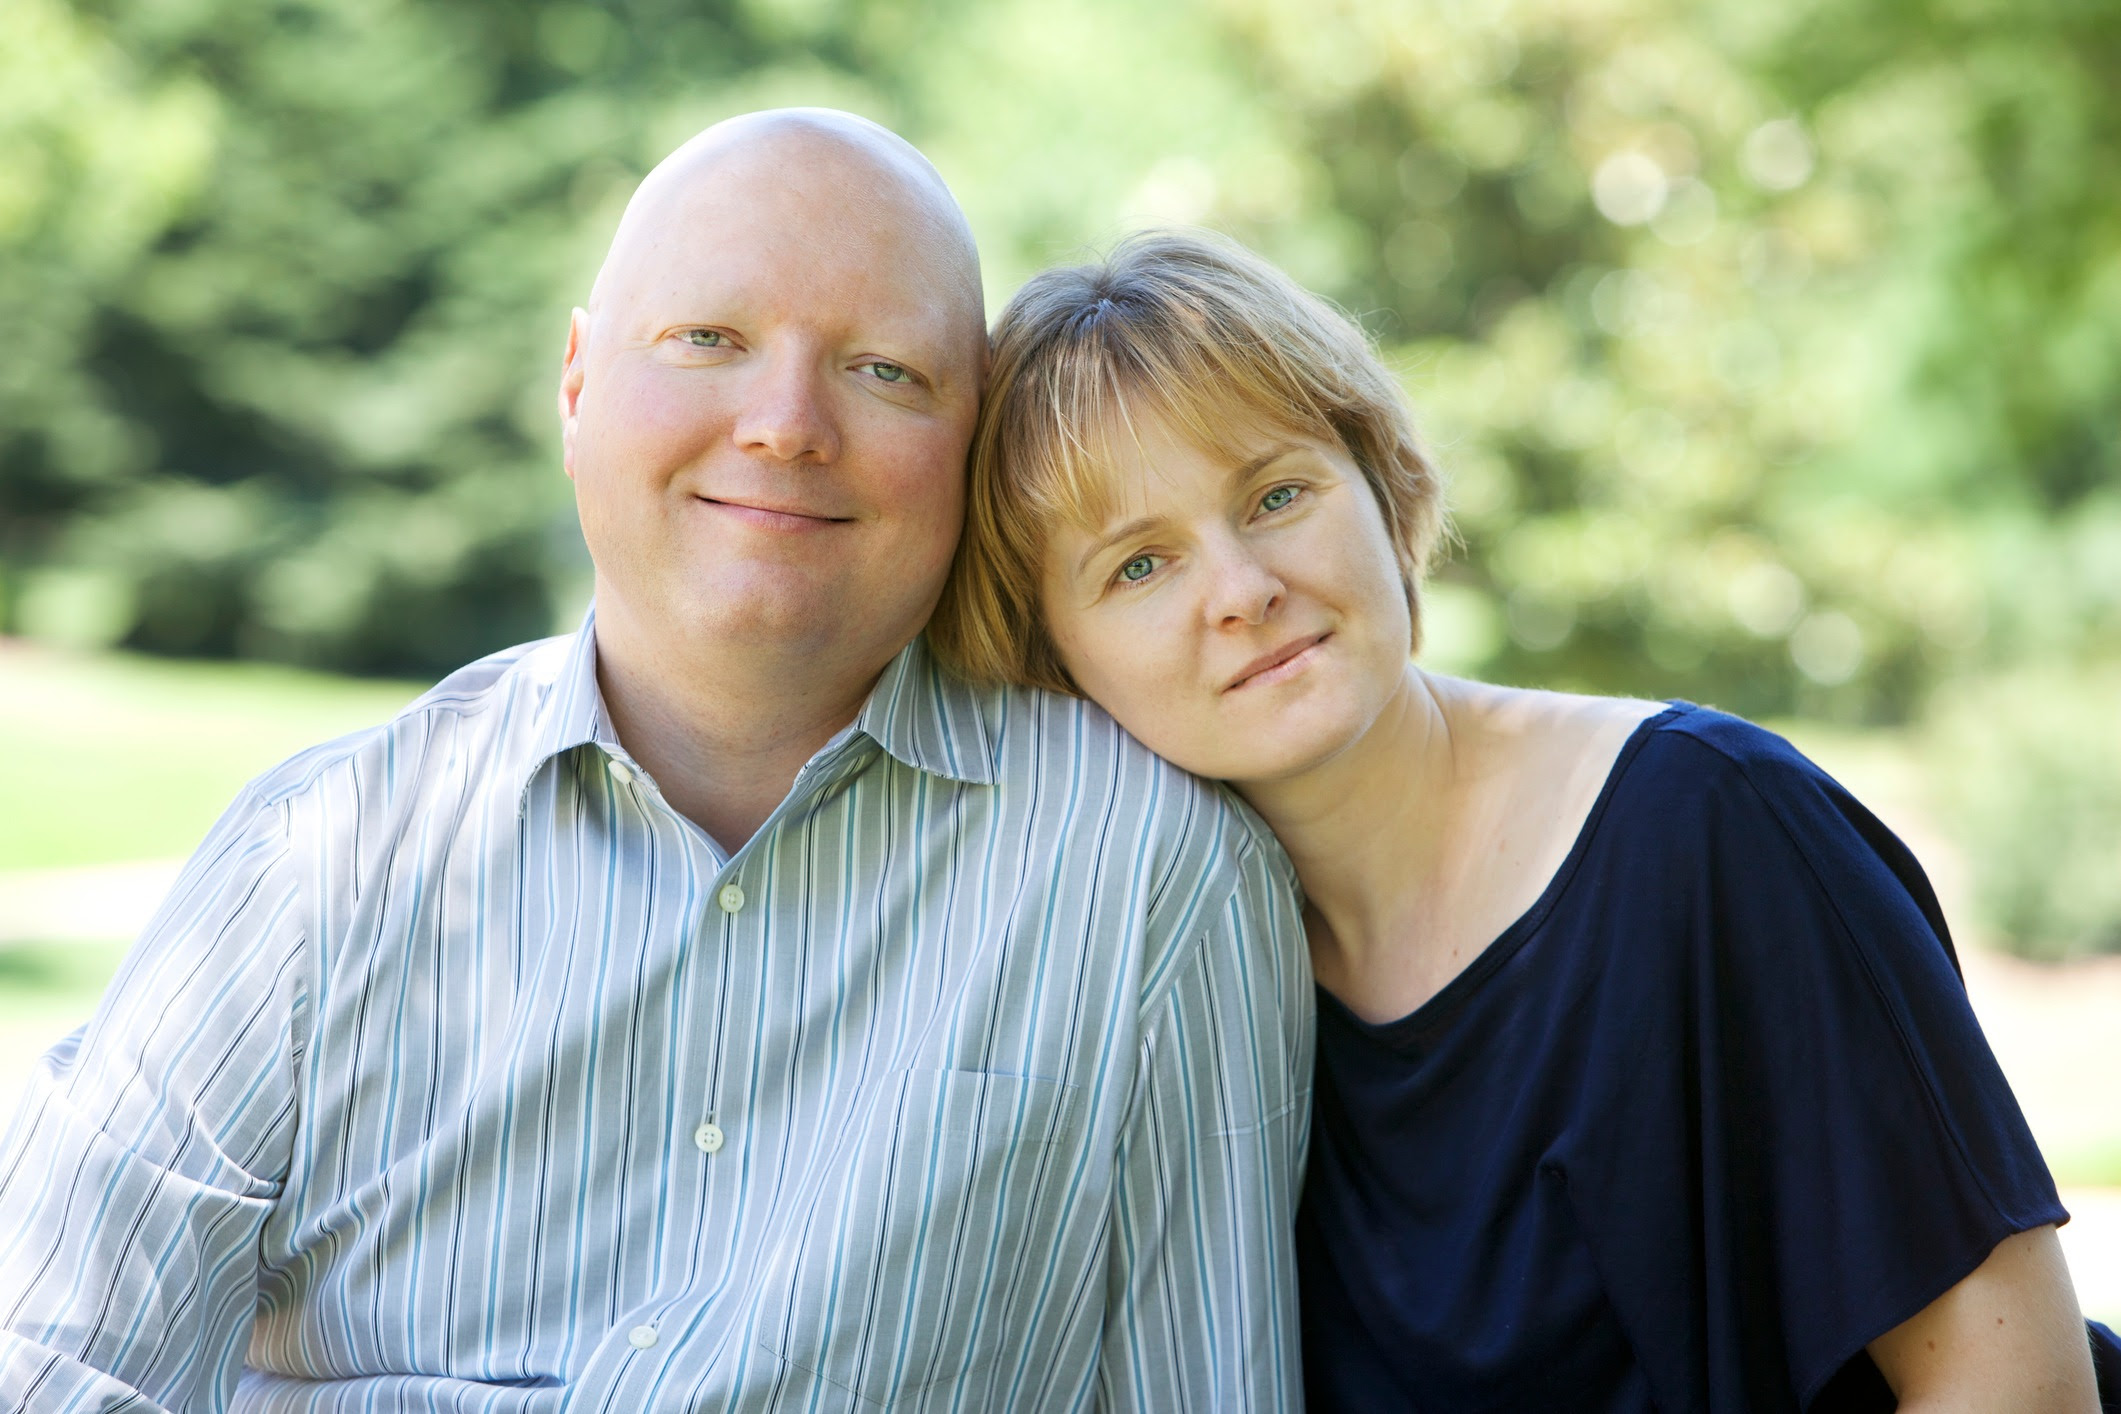 man with cancer being supported by his wife